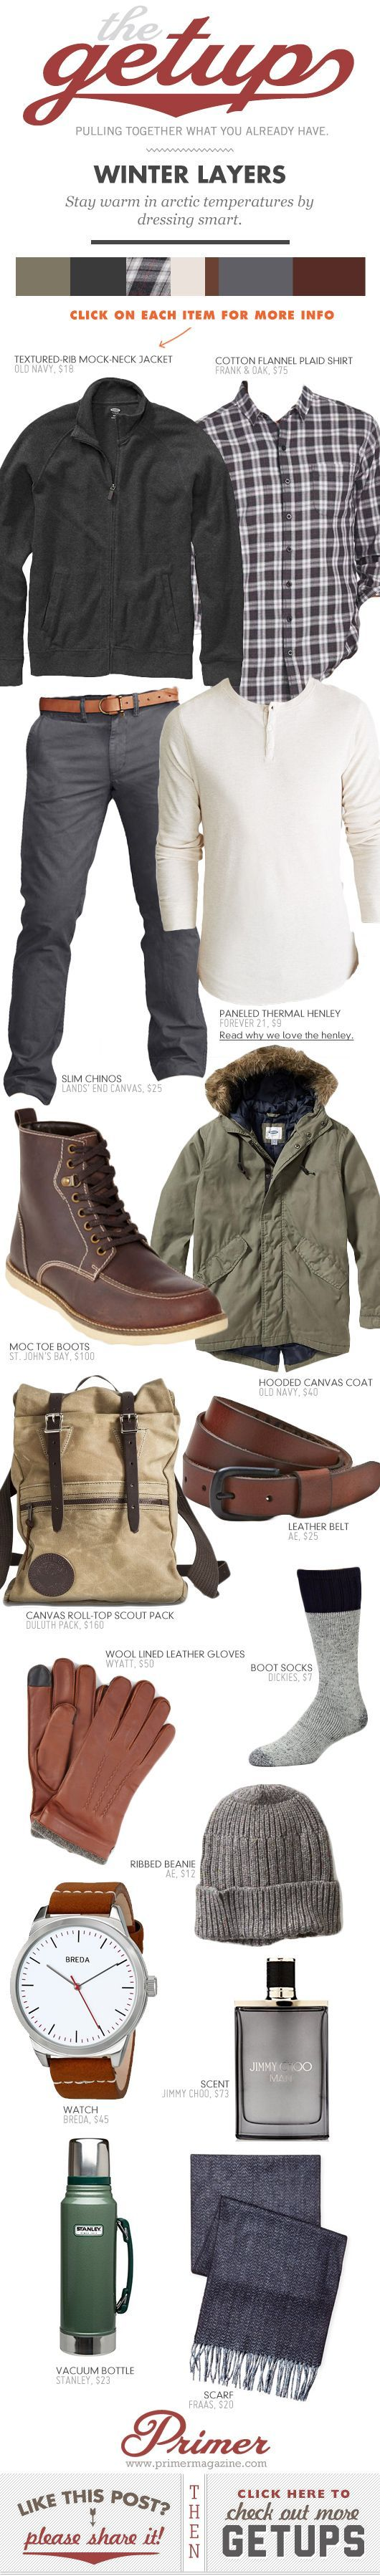 The Getup: Winter Layers - Primer - women's online clothing, thermal clothing, womens clothes shopping online *sponsored https://www.pinterest.com/clothing_yes/ https://www.pinterest.com/explore/clothes/ https://www.pinterest.com/clothing_yes/clothes/ http://www.cabelas.com/category/Clothing/104797080.uts